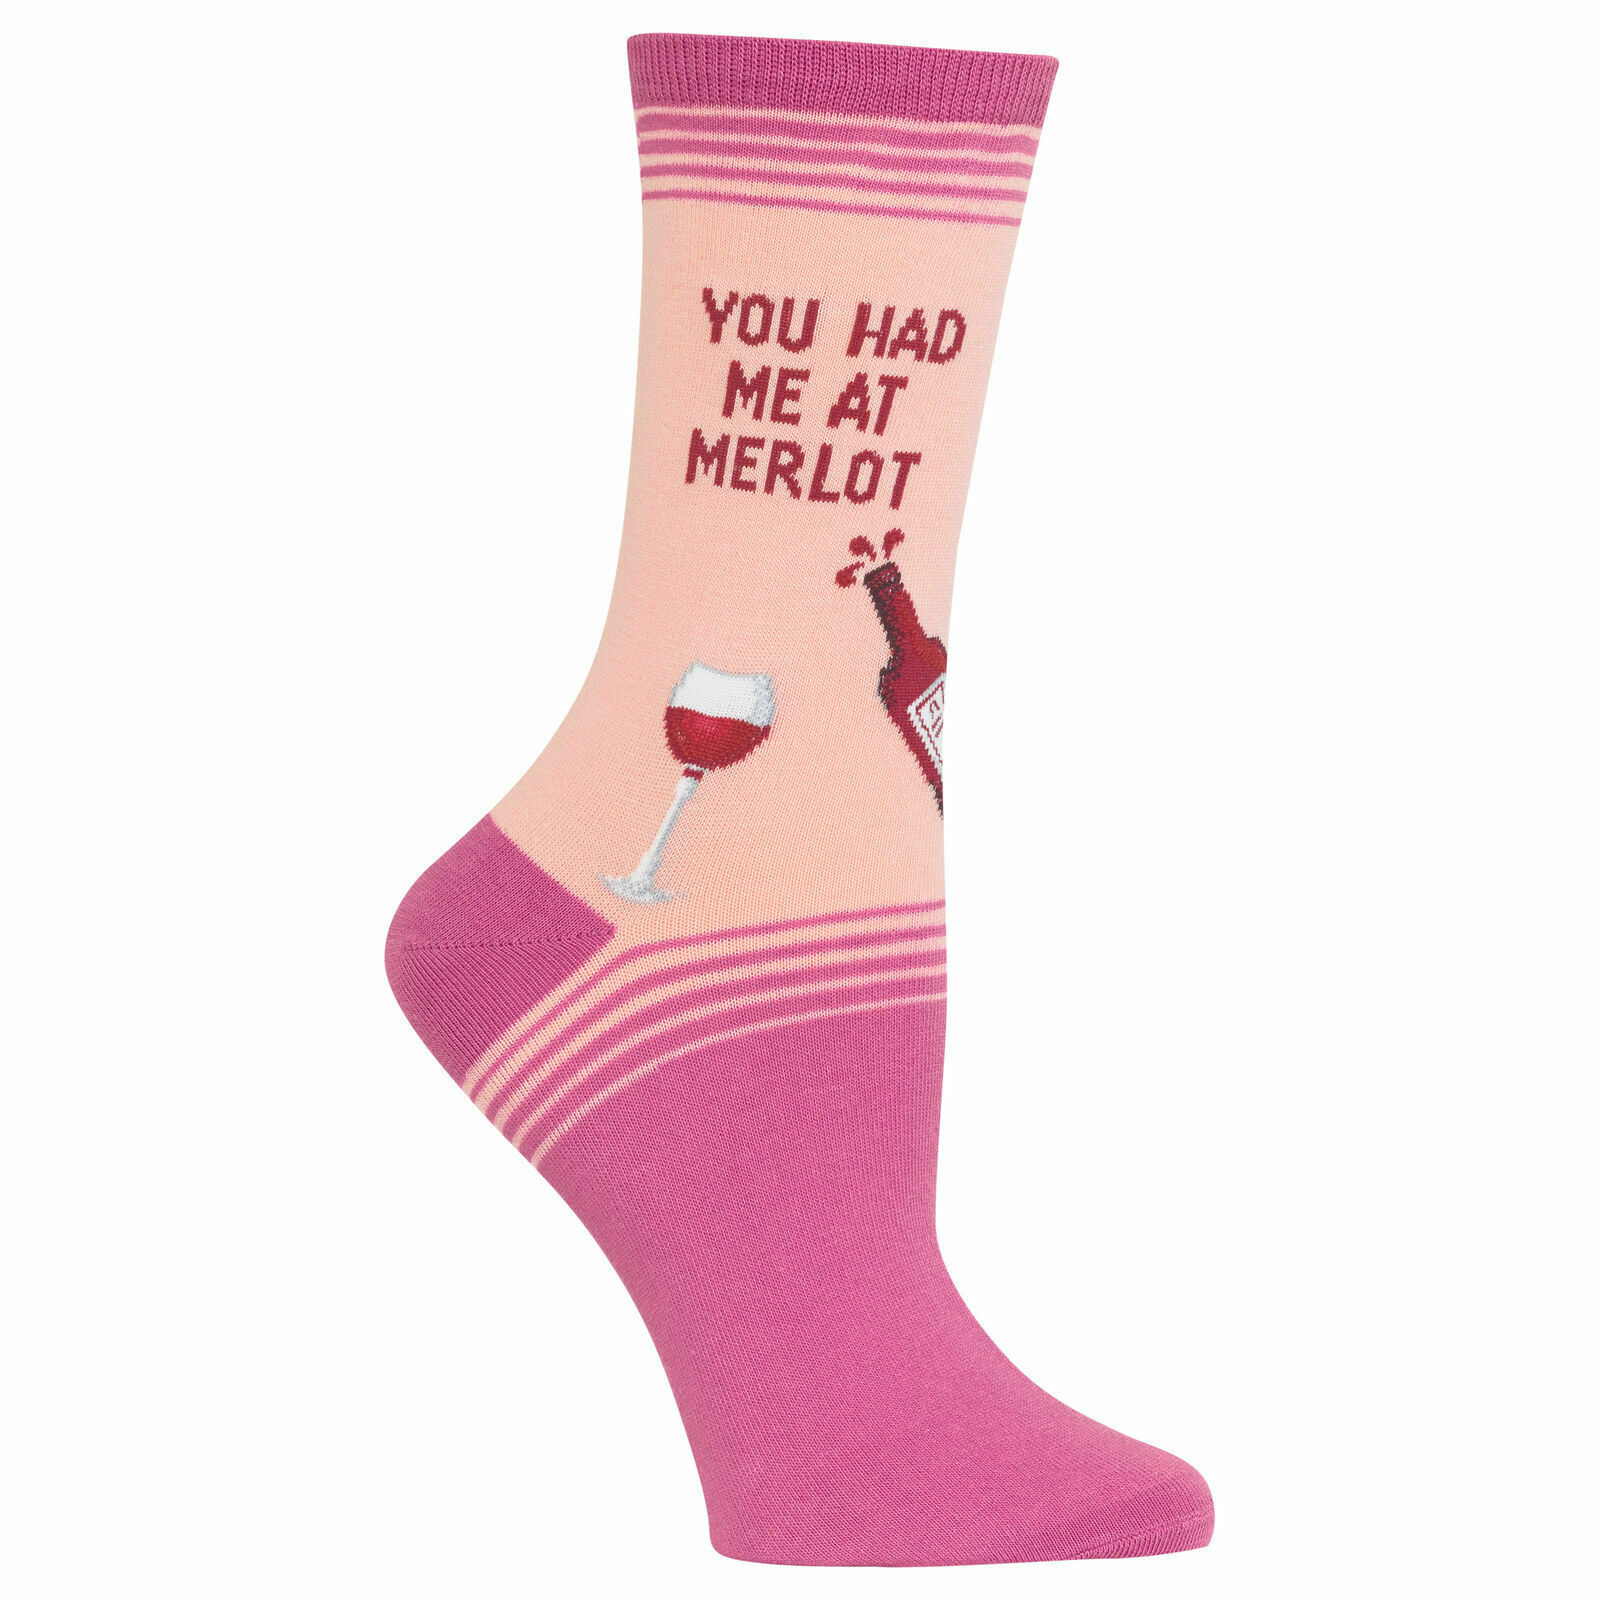 Hot Sox Women's You Had Me at Merlot Blush Pink Ankle Crew Socks New w Tag